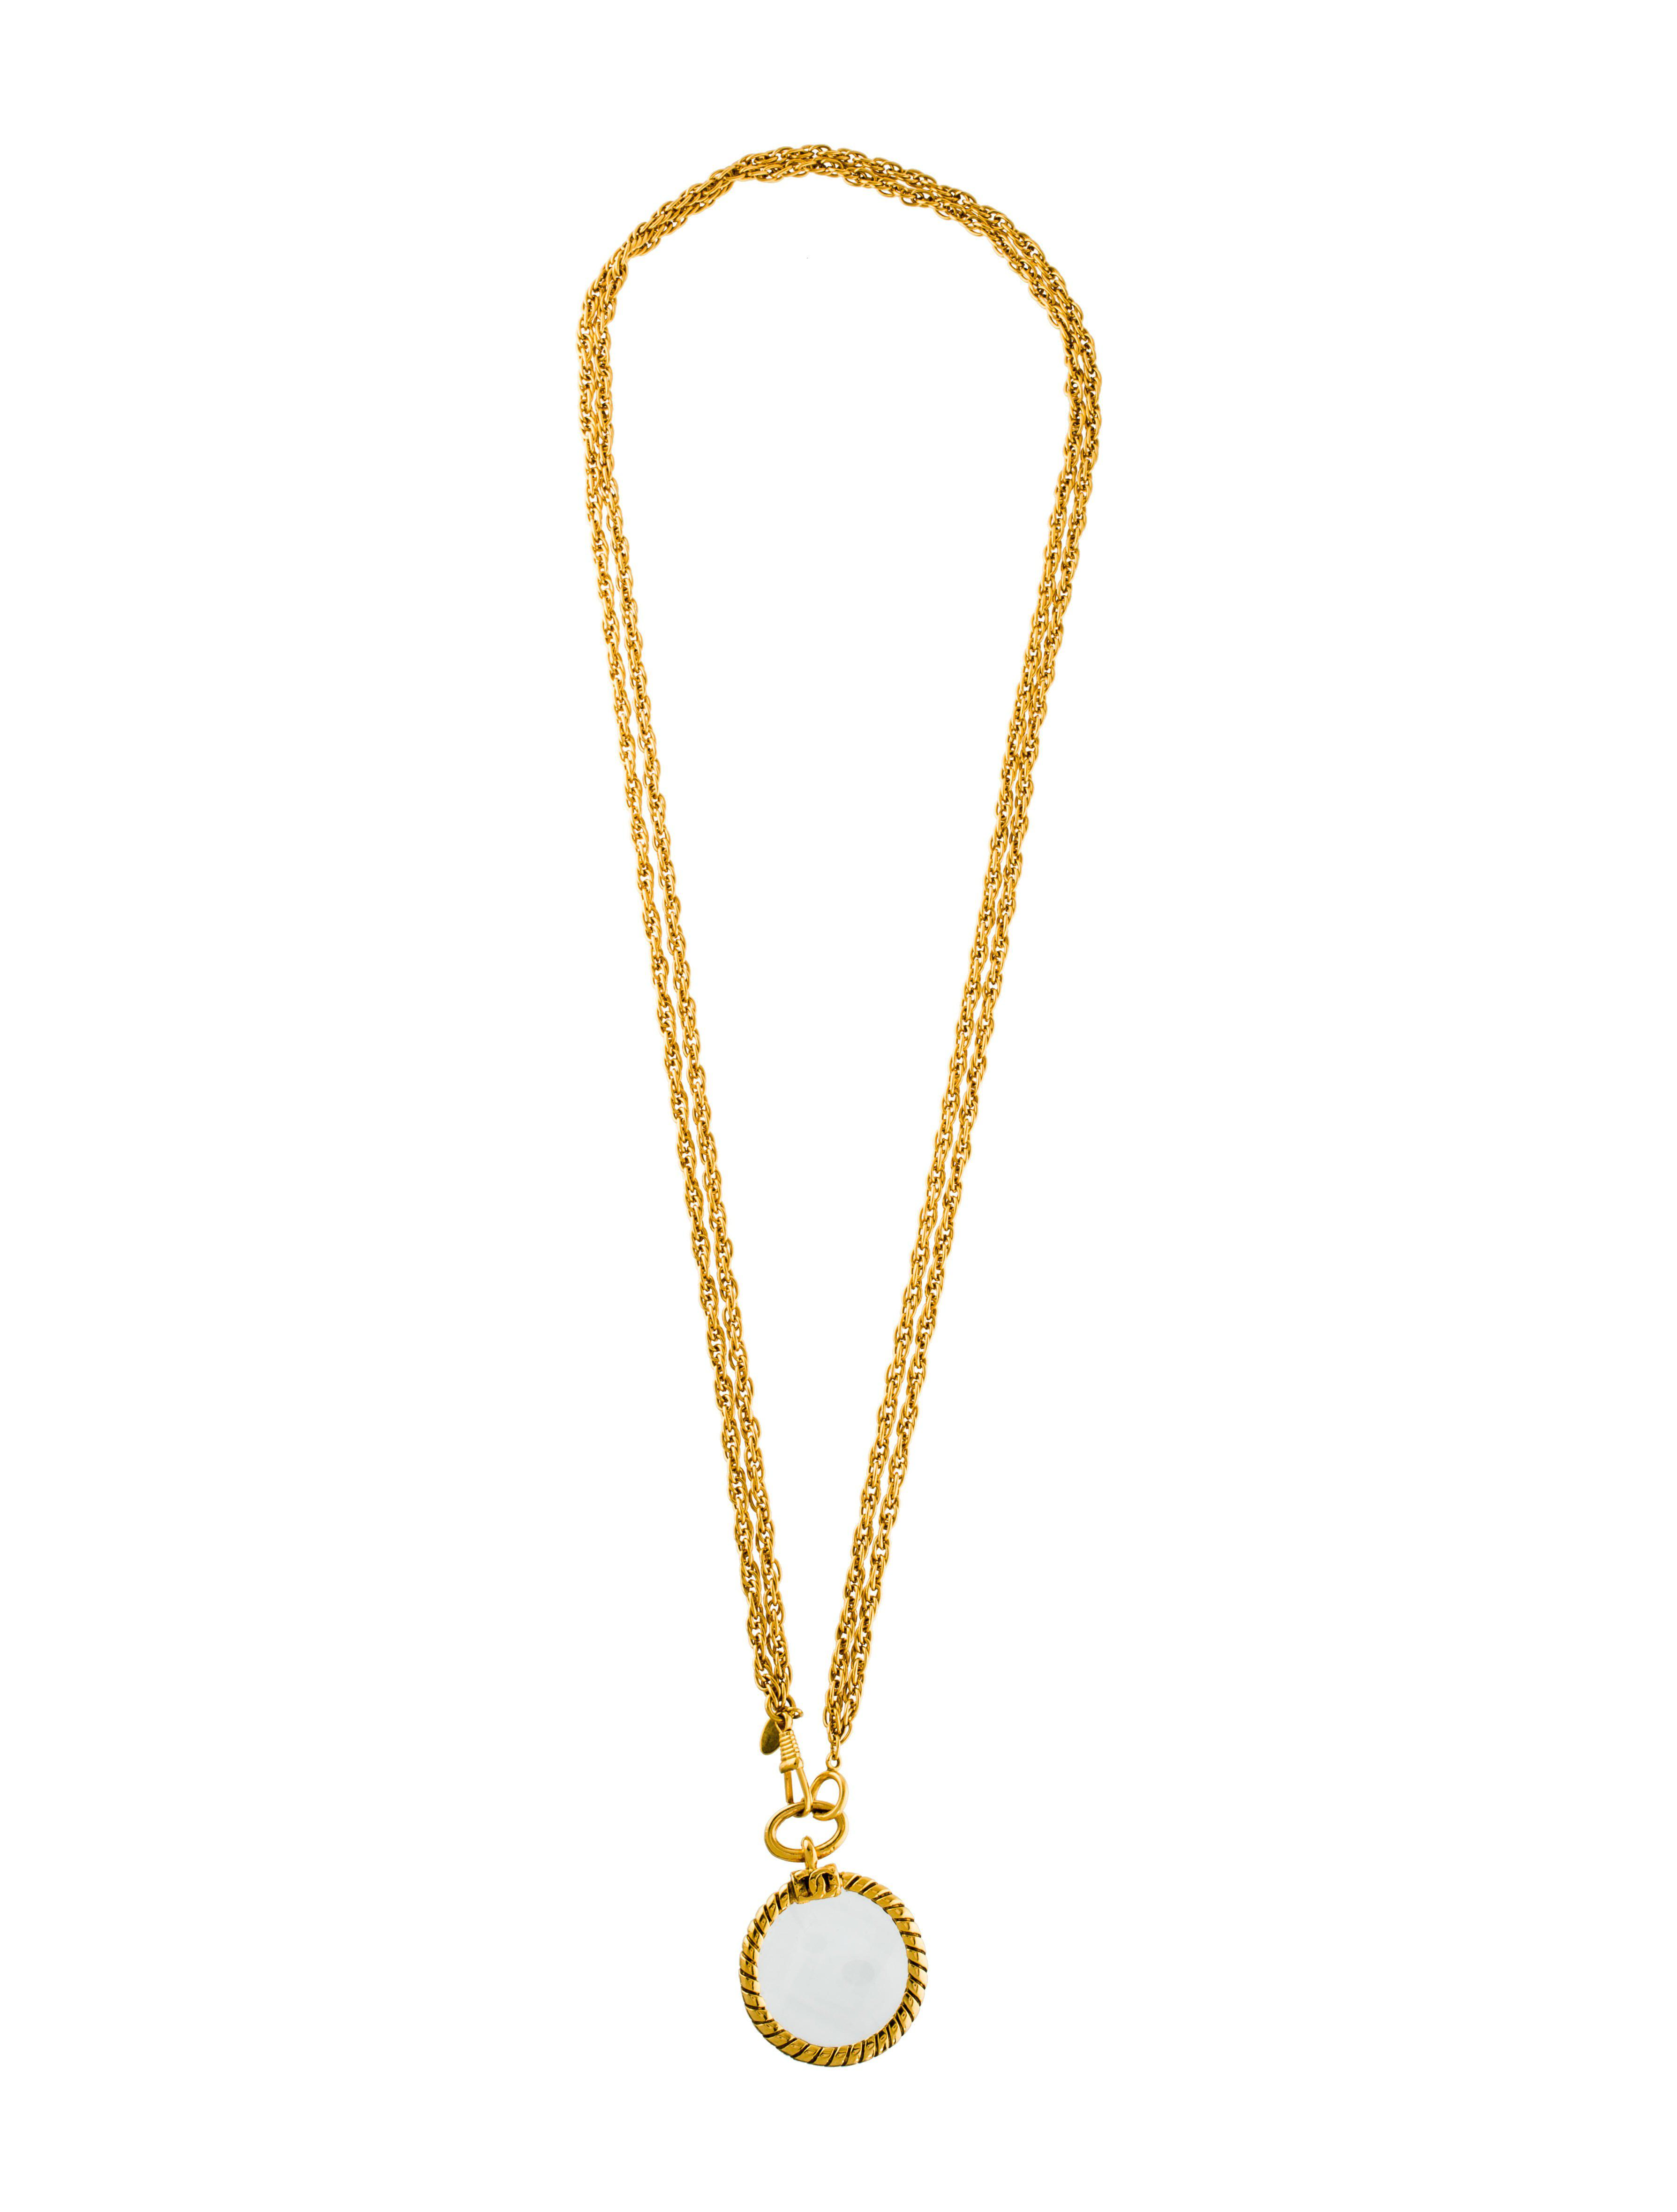 Lyst chanel magnifying glass pendant necklace gold in metallic aloadofball Choice Image